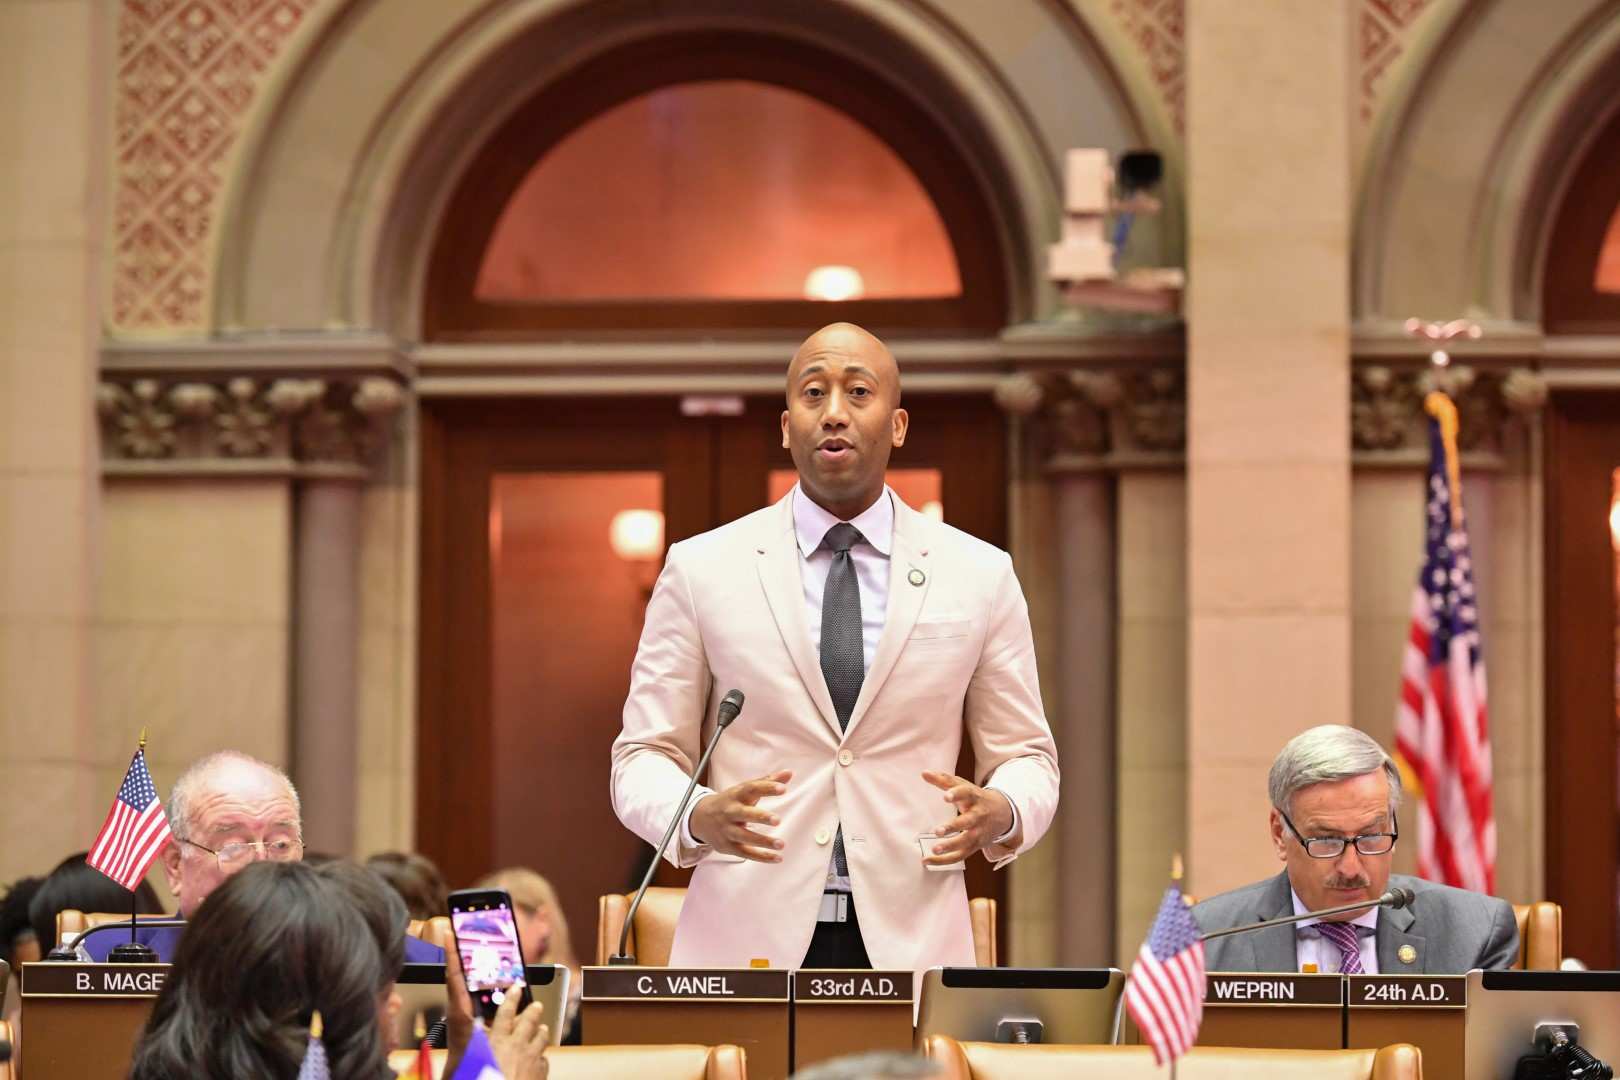 Assembly member Vanel debating on the creation of the Digital Currency Task Force Bill.